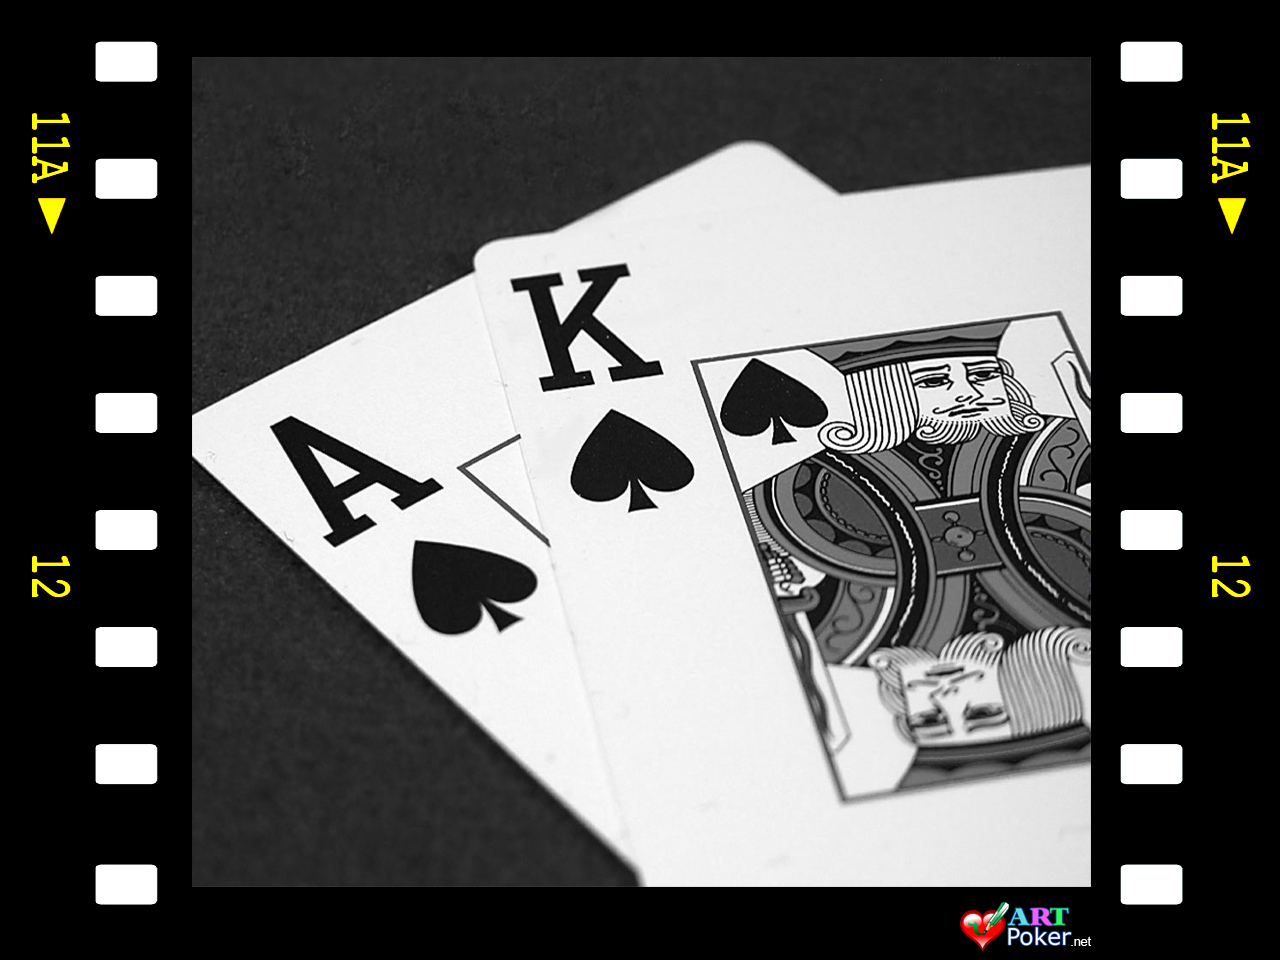 Acr network poker